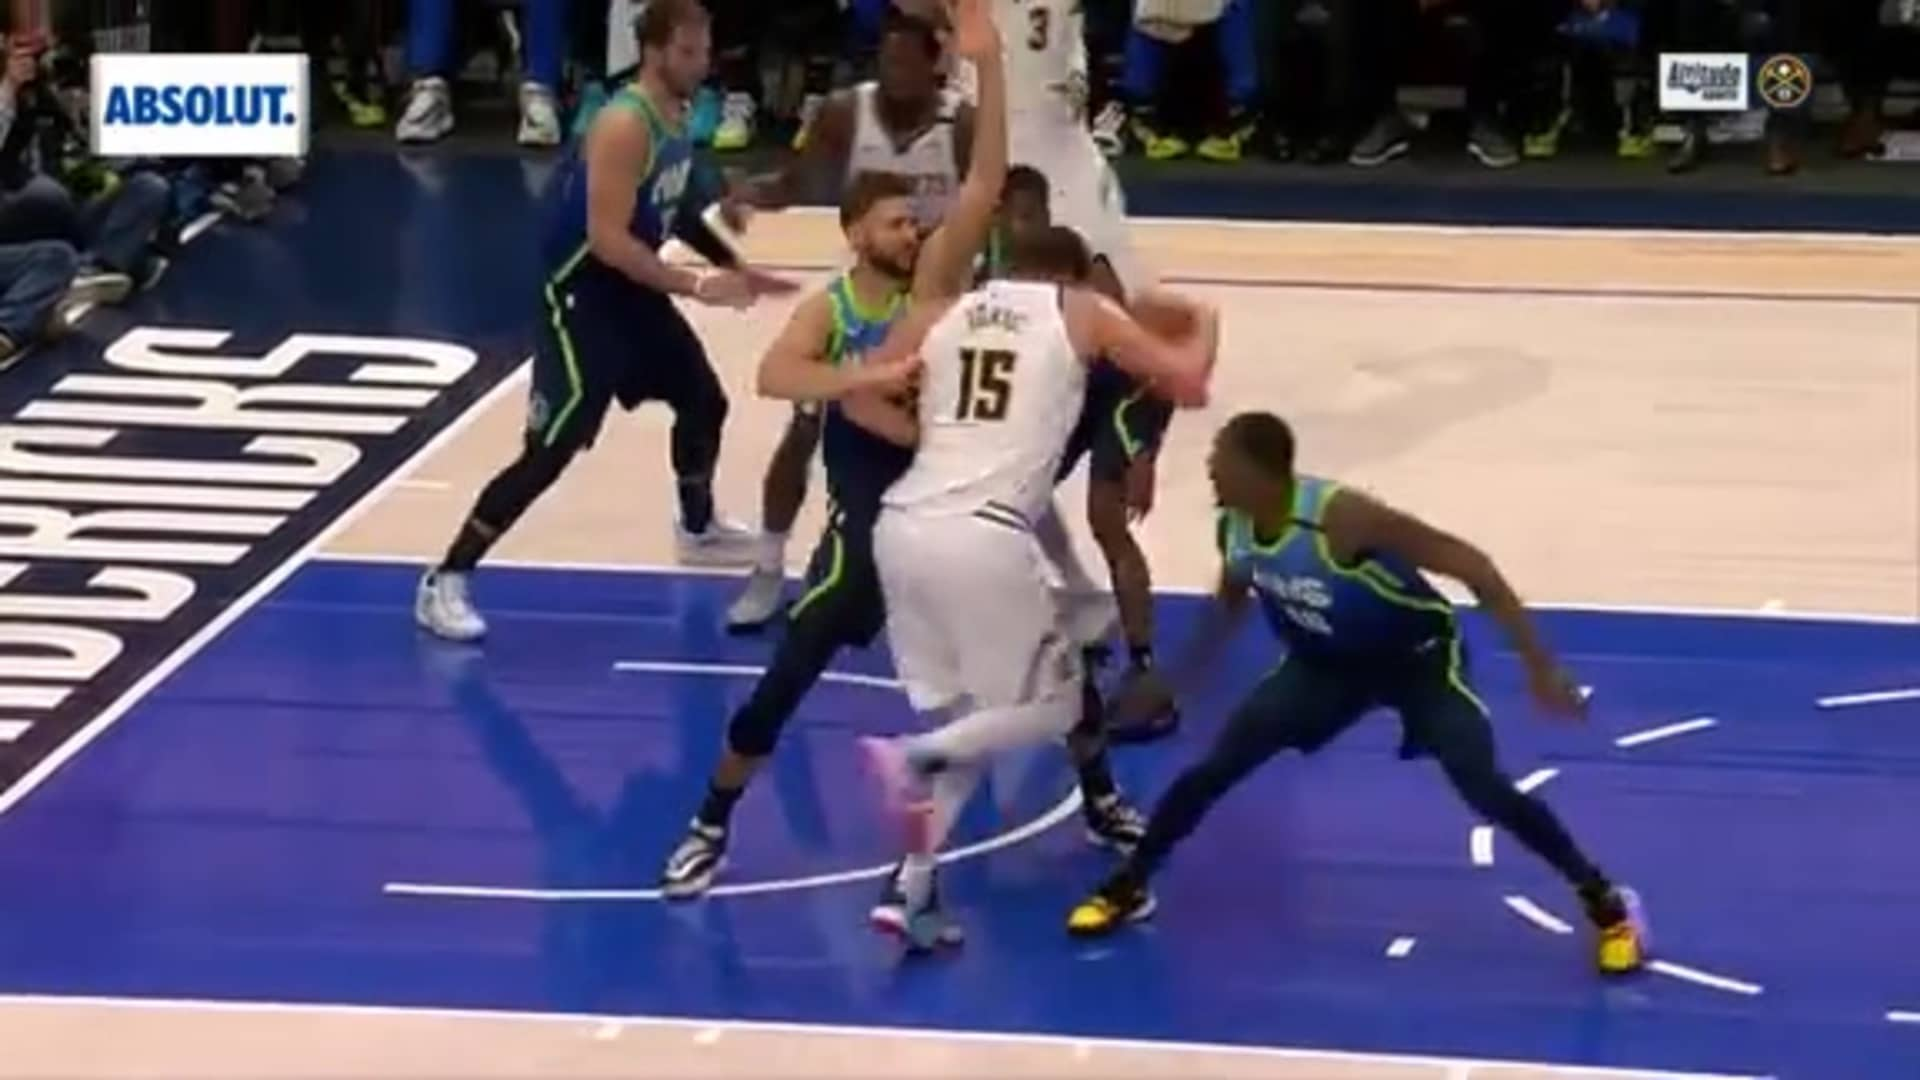 Nikola Jokic highlights (33 points) vs. Mavericks: Jan. 8